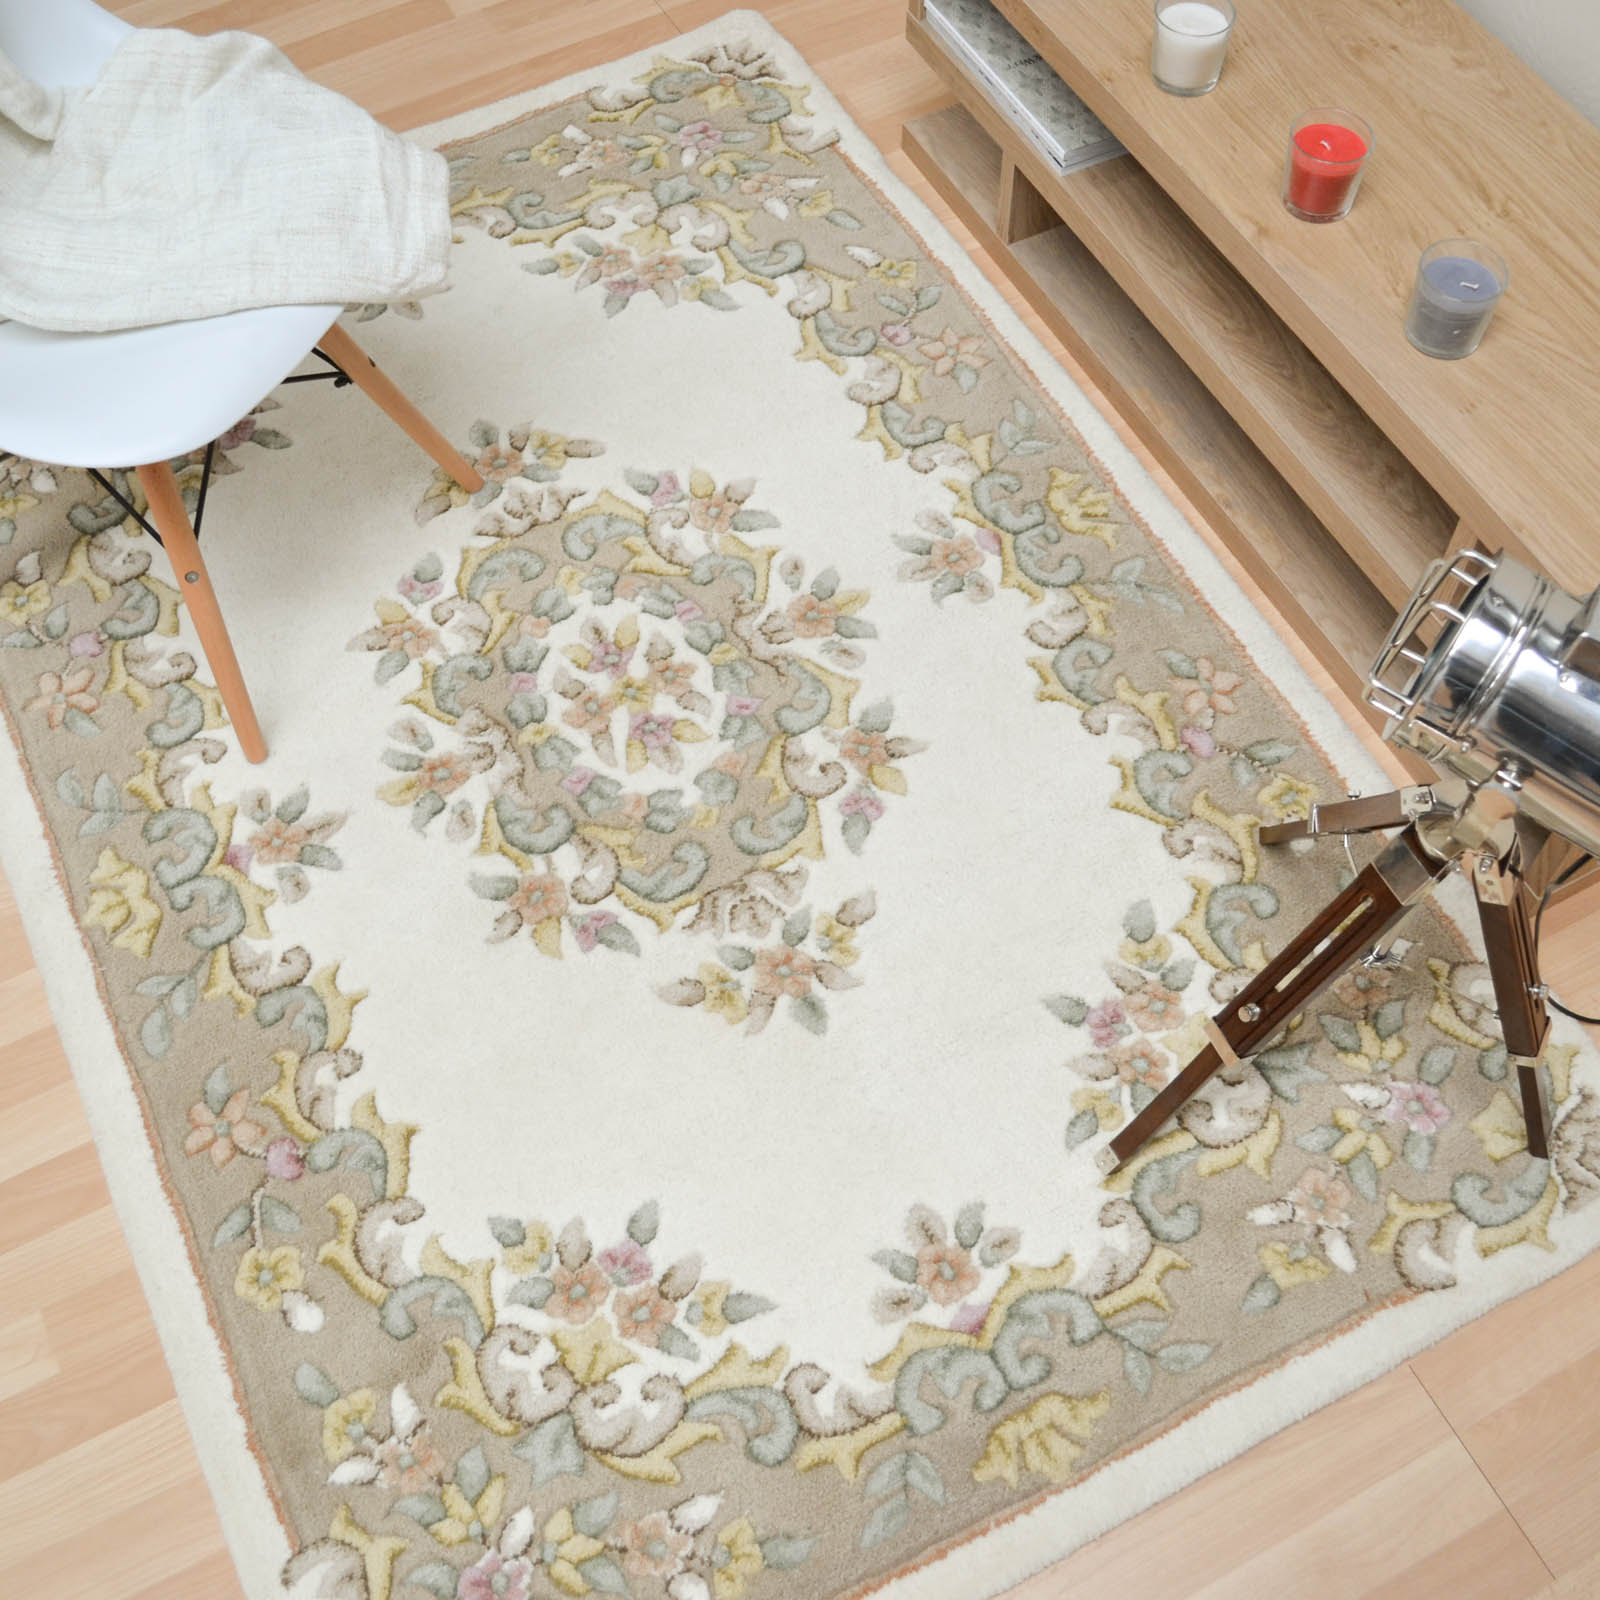 Jewel Traditional Wool Rugs in Ivory Beige